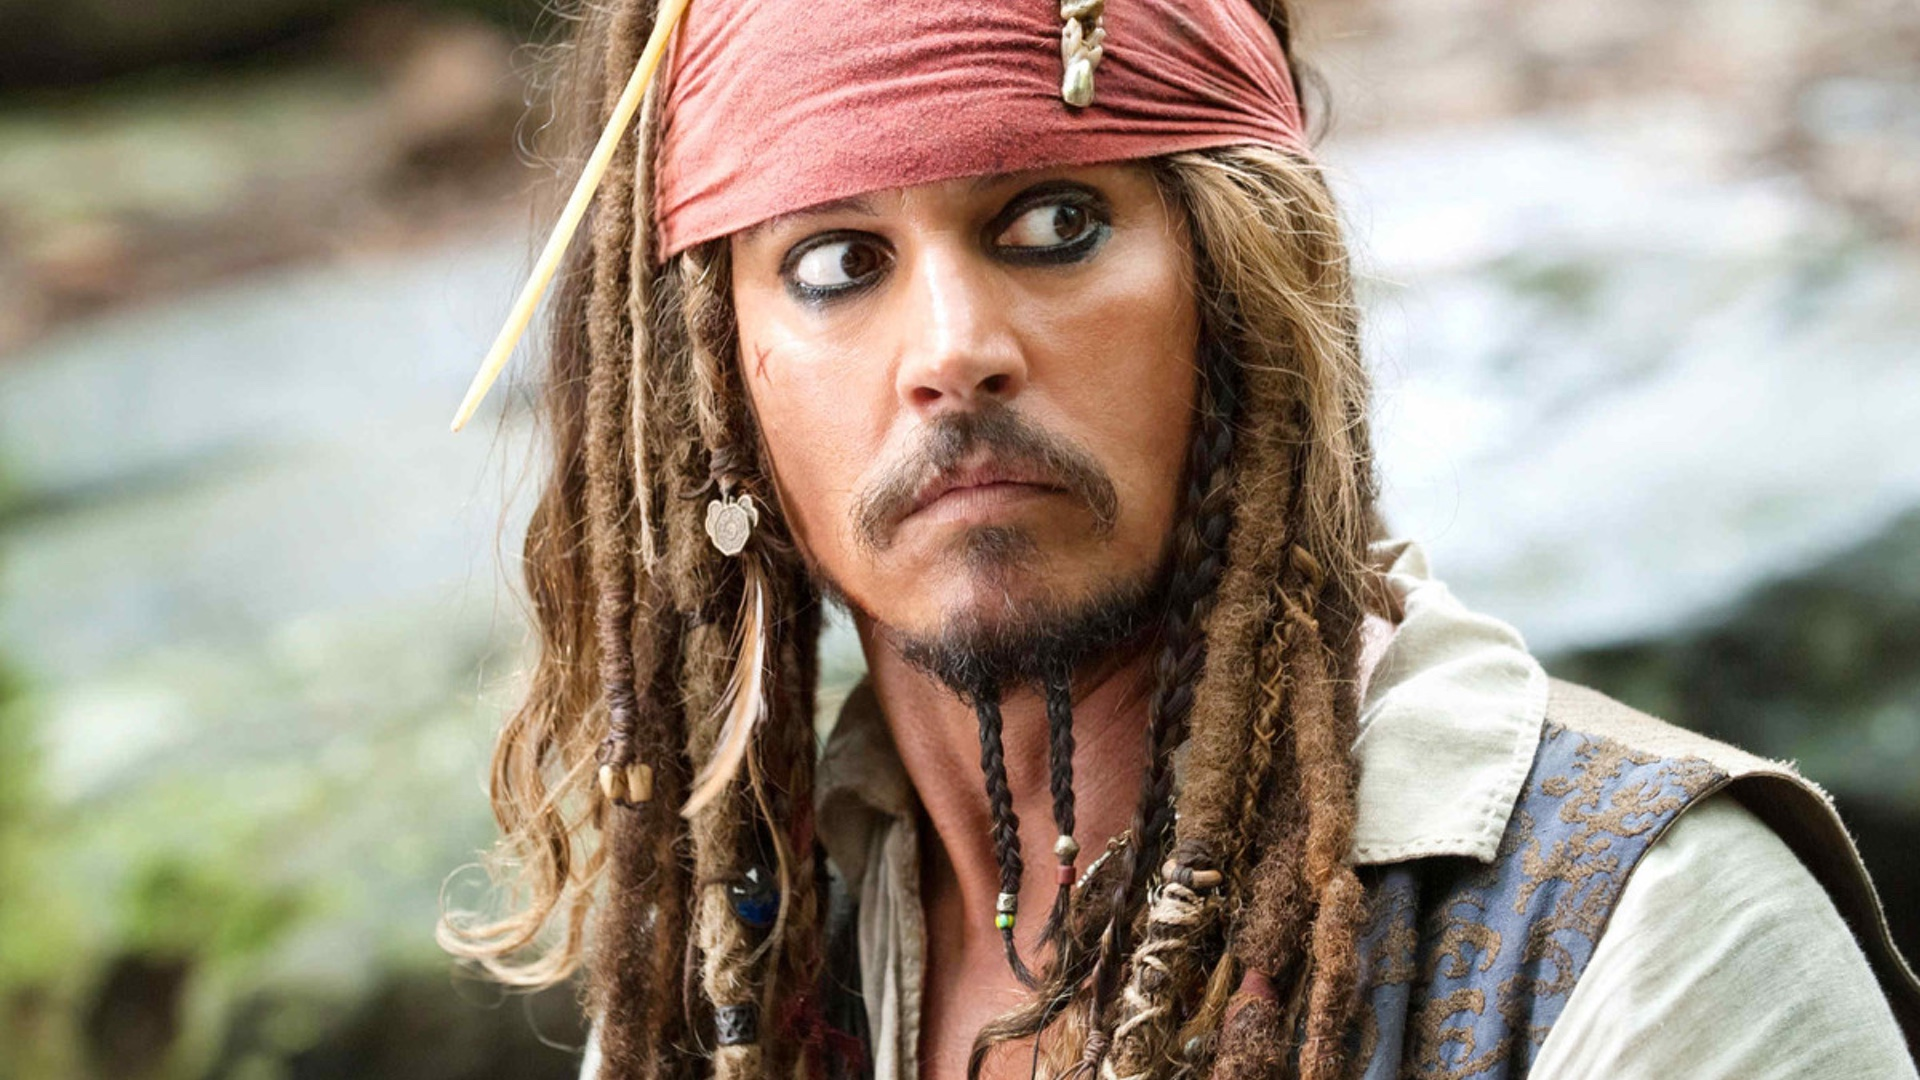 johnny-depp-confirmed-not-to-return-as-jack-sparrow-in-disneys-pirates-of-the-caribbean-reboot-social.jpg